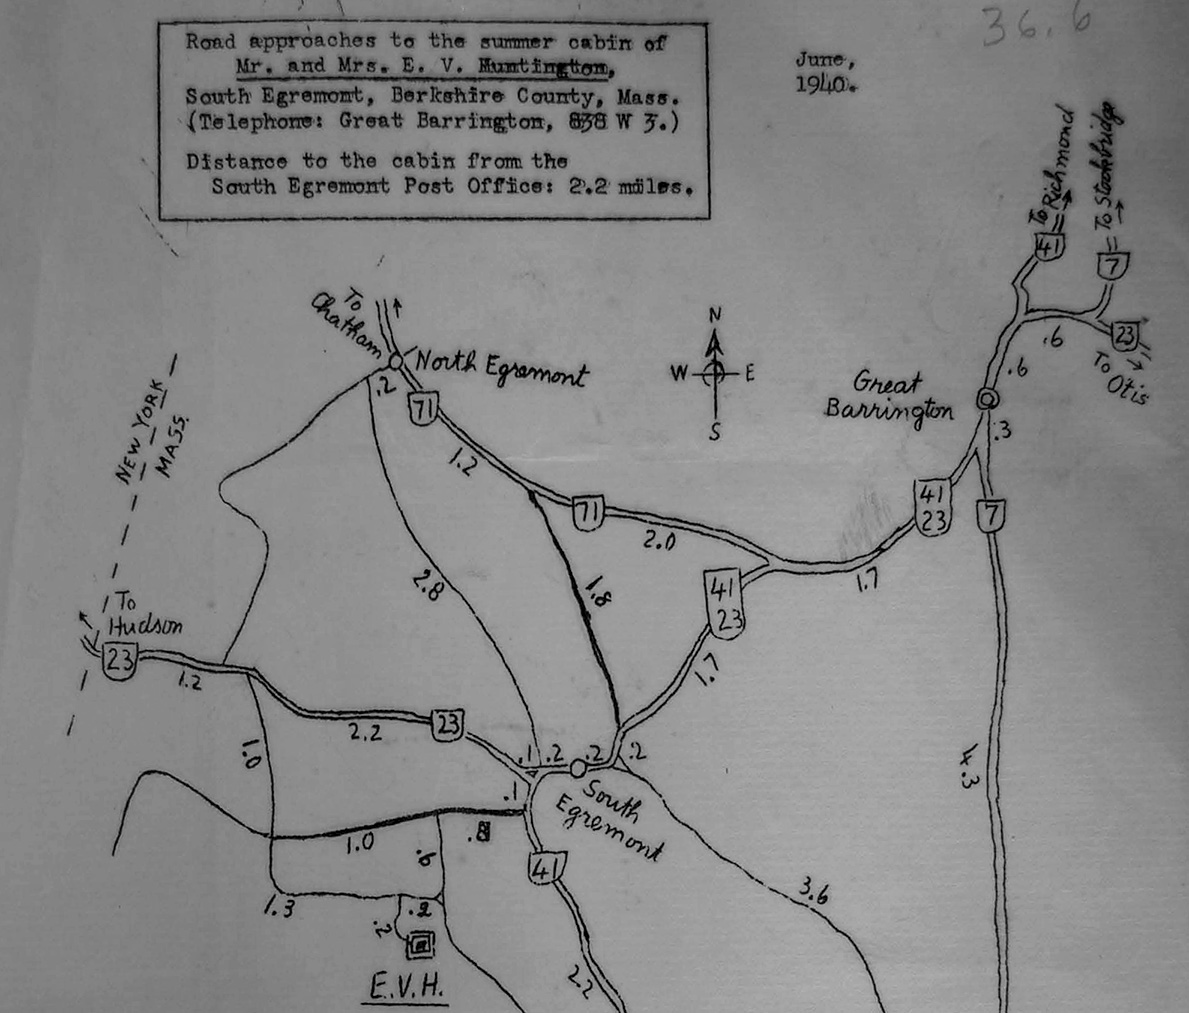 image of mimeographed map to Huntington's cabin in the Berkshires